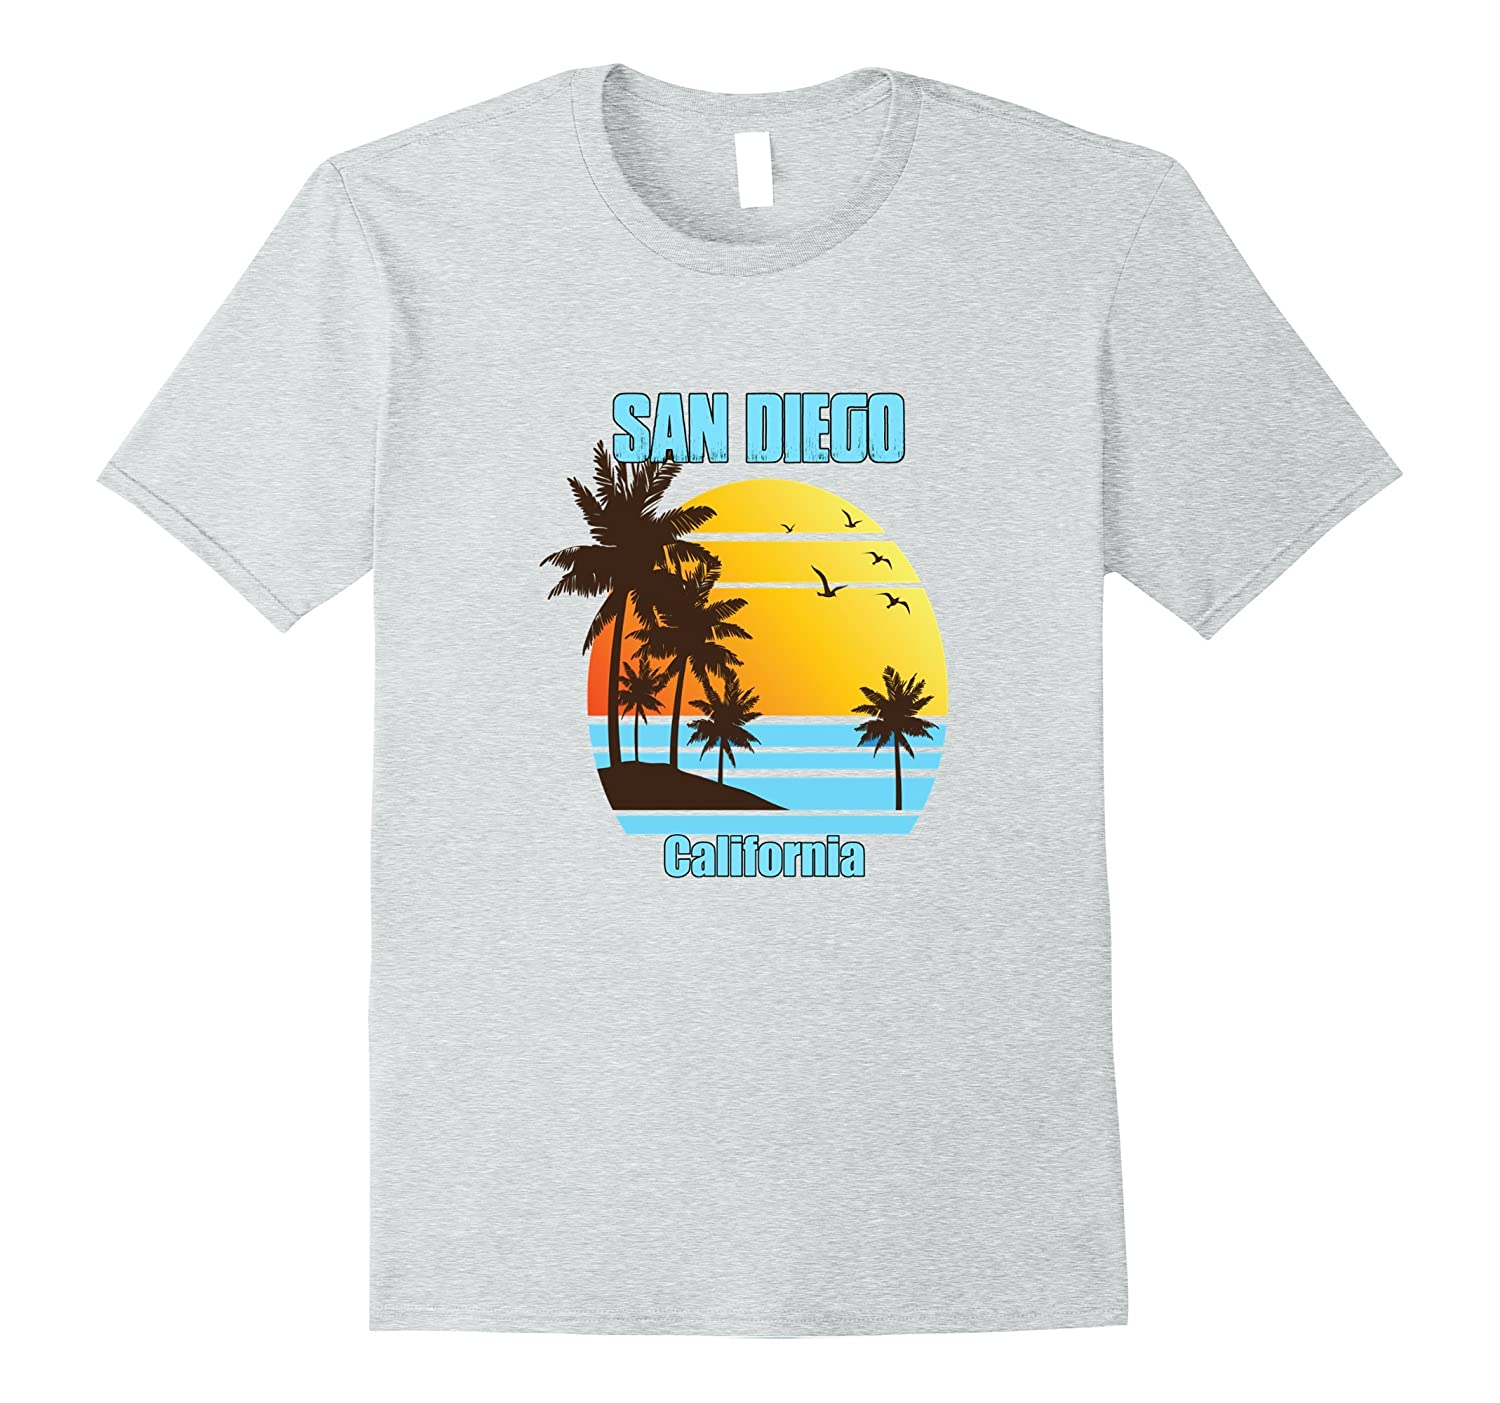 bfd024f72 San Diego California Family Vacation Shirt Sunset Palm Trees-BN ...